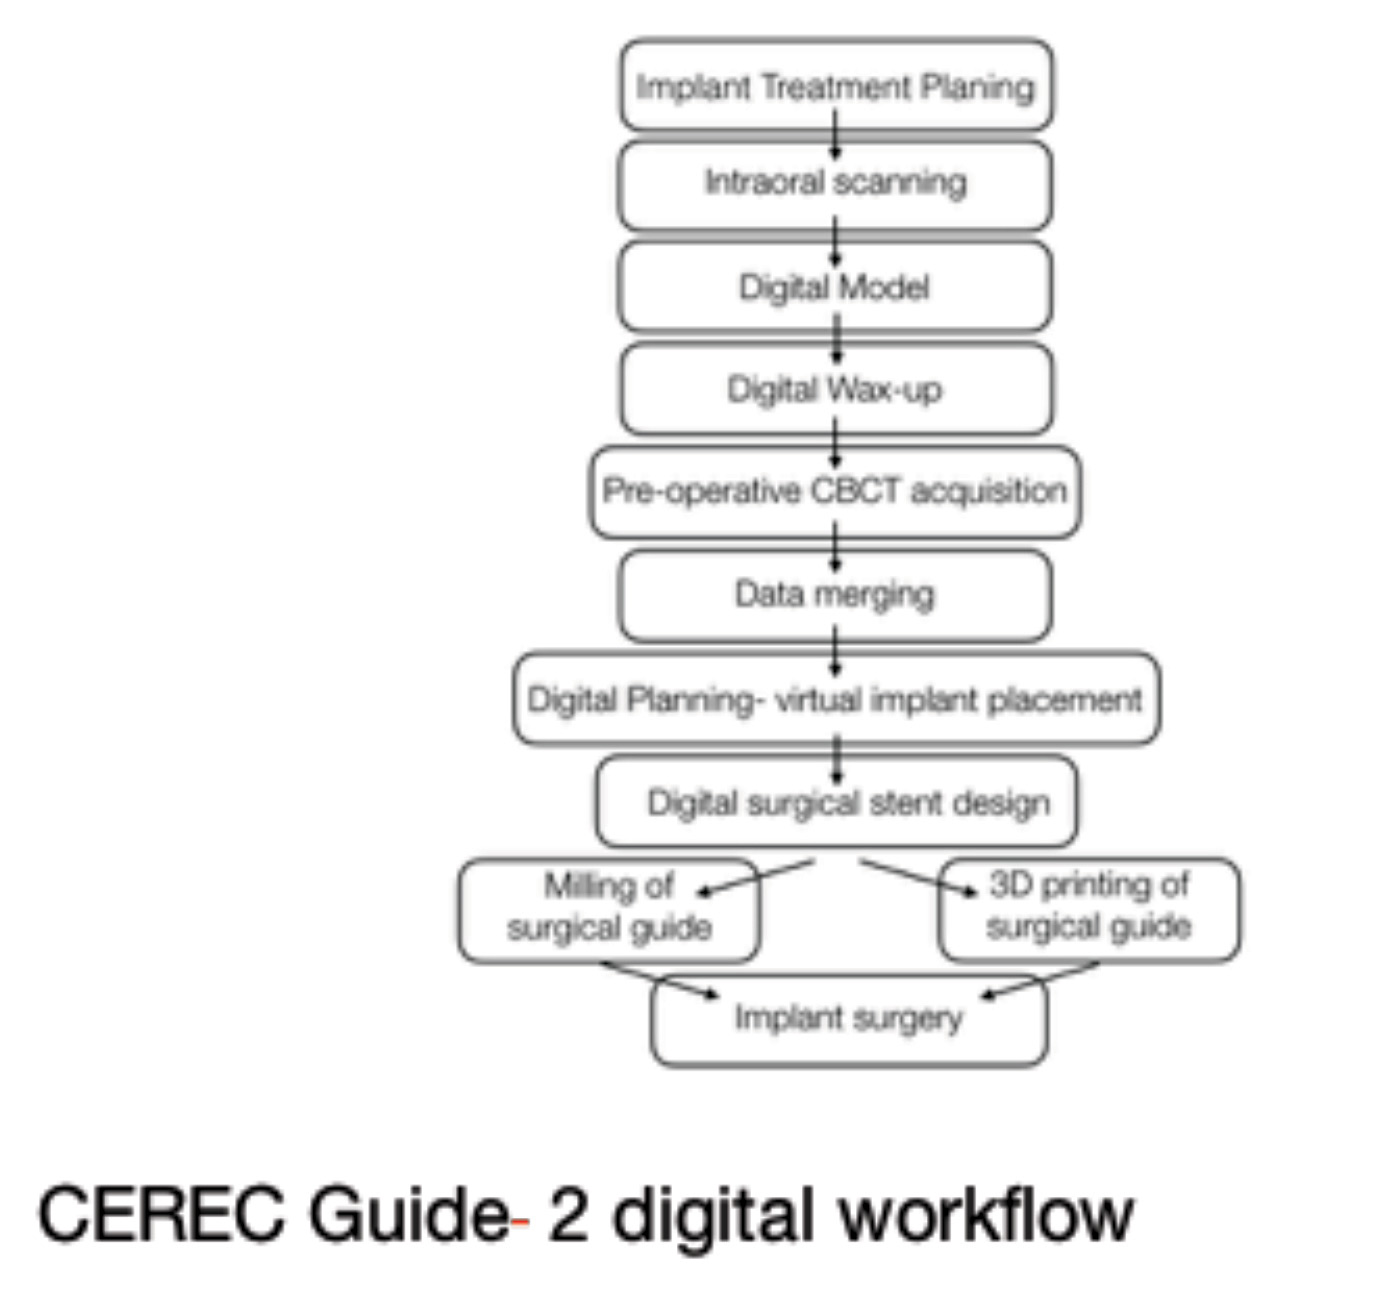 Cerec Guide – 2 digital workflow. Non-restorable #24 requiring exo.